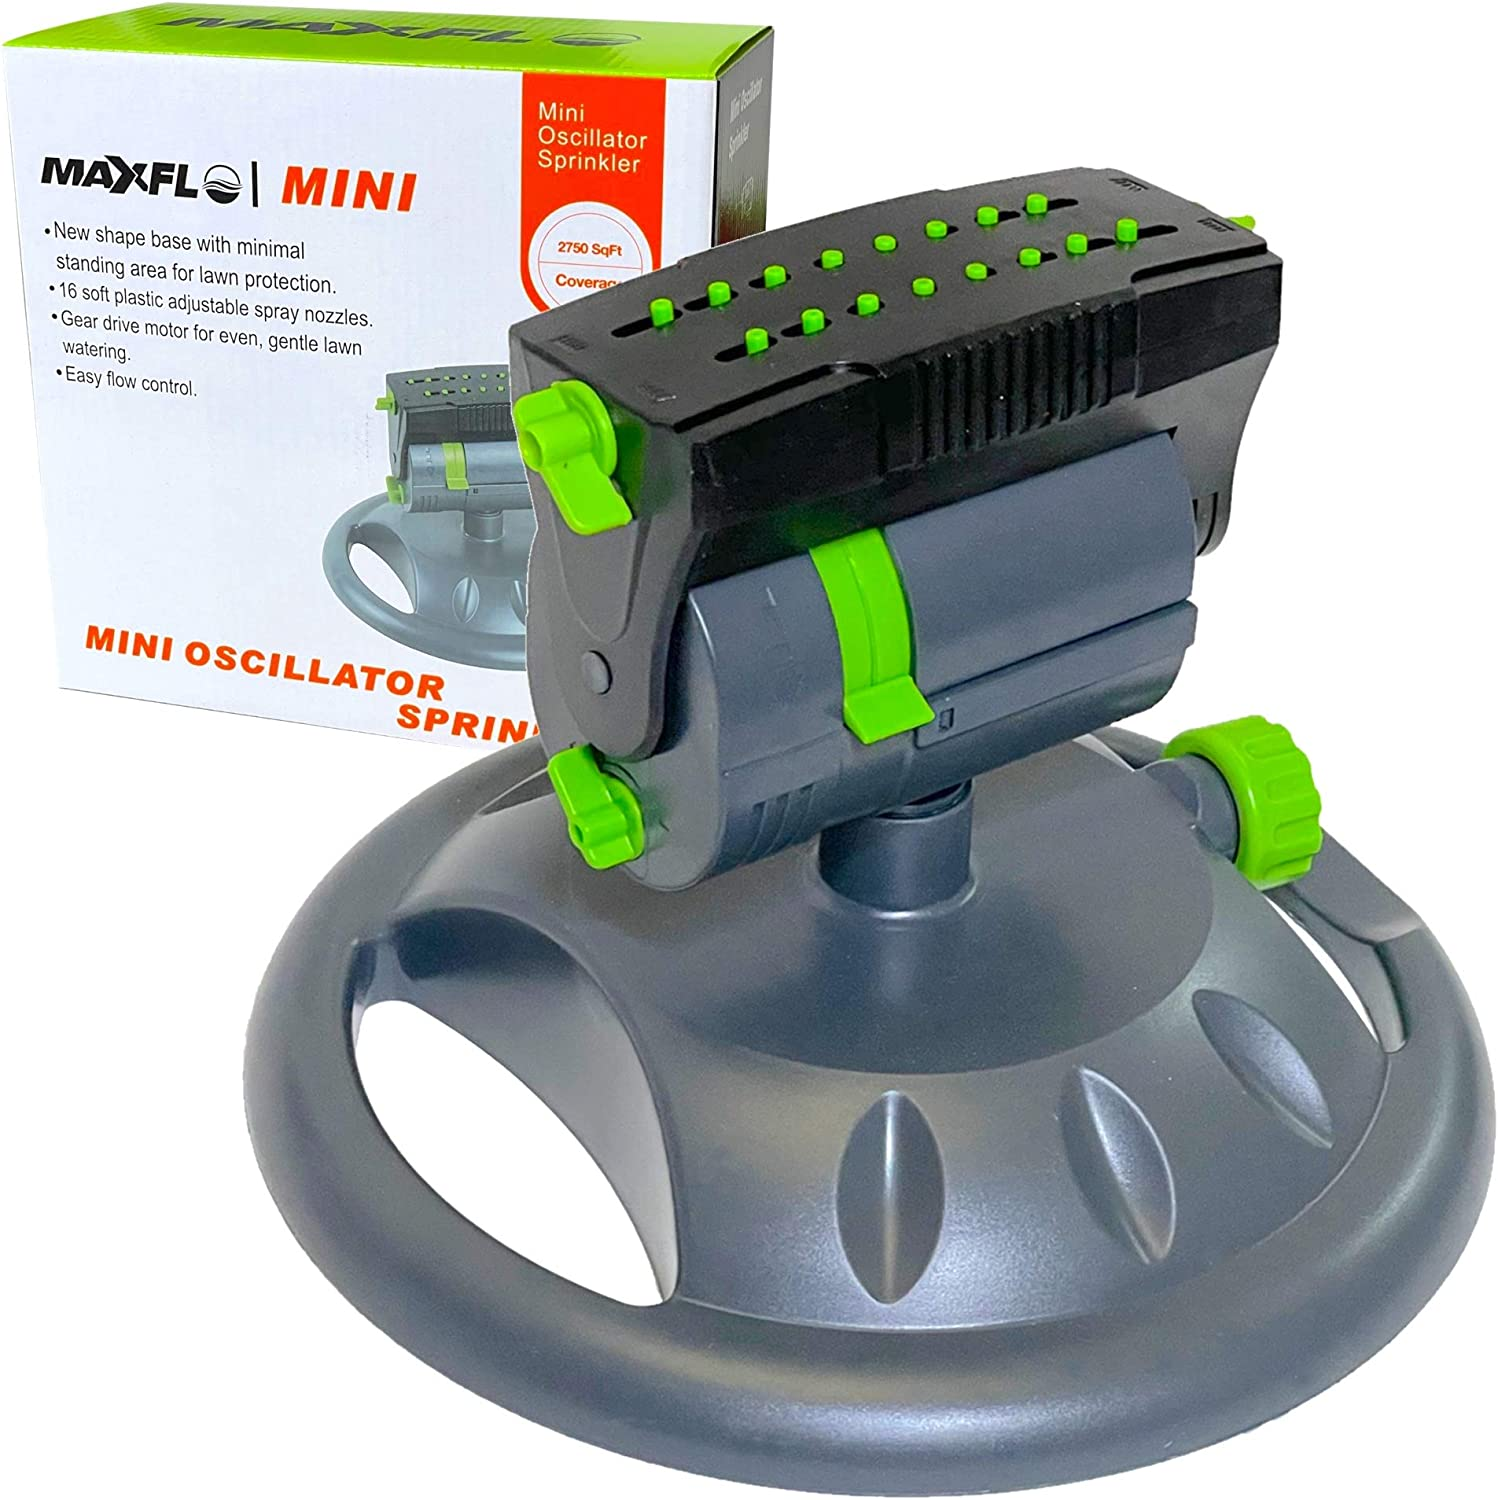 MAXFLO Sprinklers for Yard | Heavy Duty Water Sprinklers for Lawn | Garden Sprinkler for Yard | Mini Oscillating Sprinkler 360 Degree Sprinkler Watering System | Large Coverage | Leakproof Connection